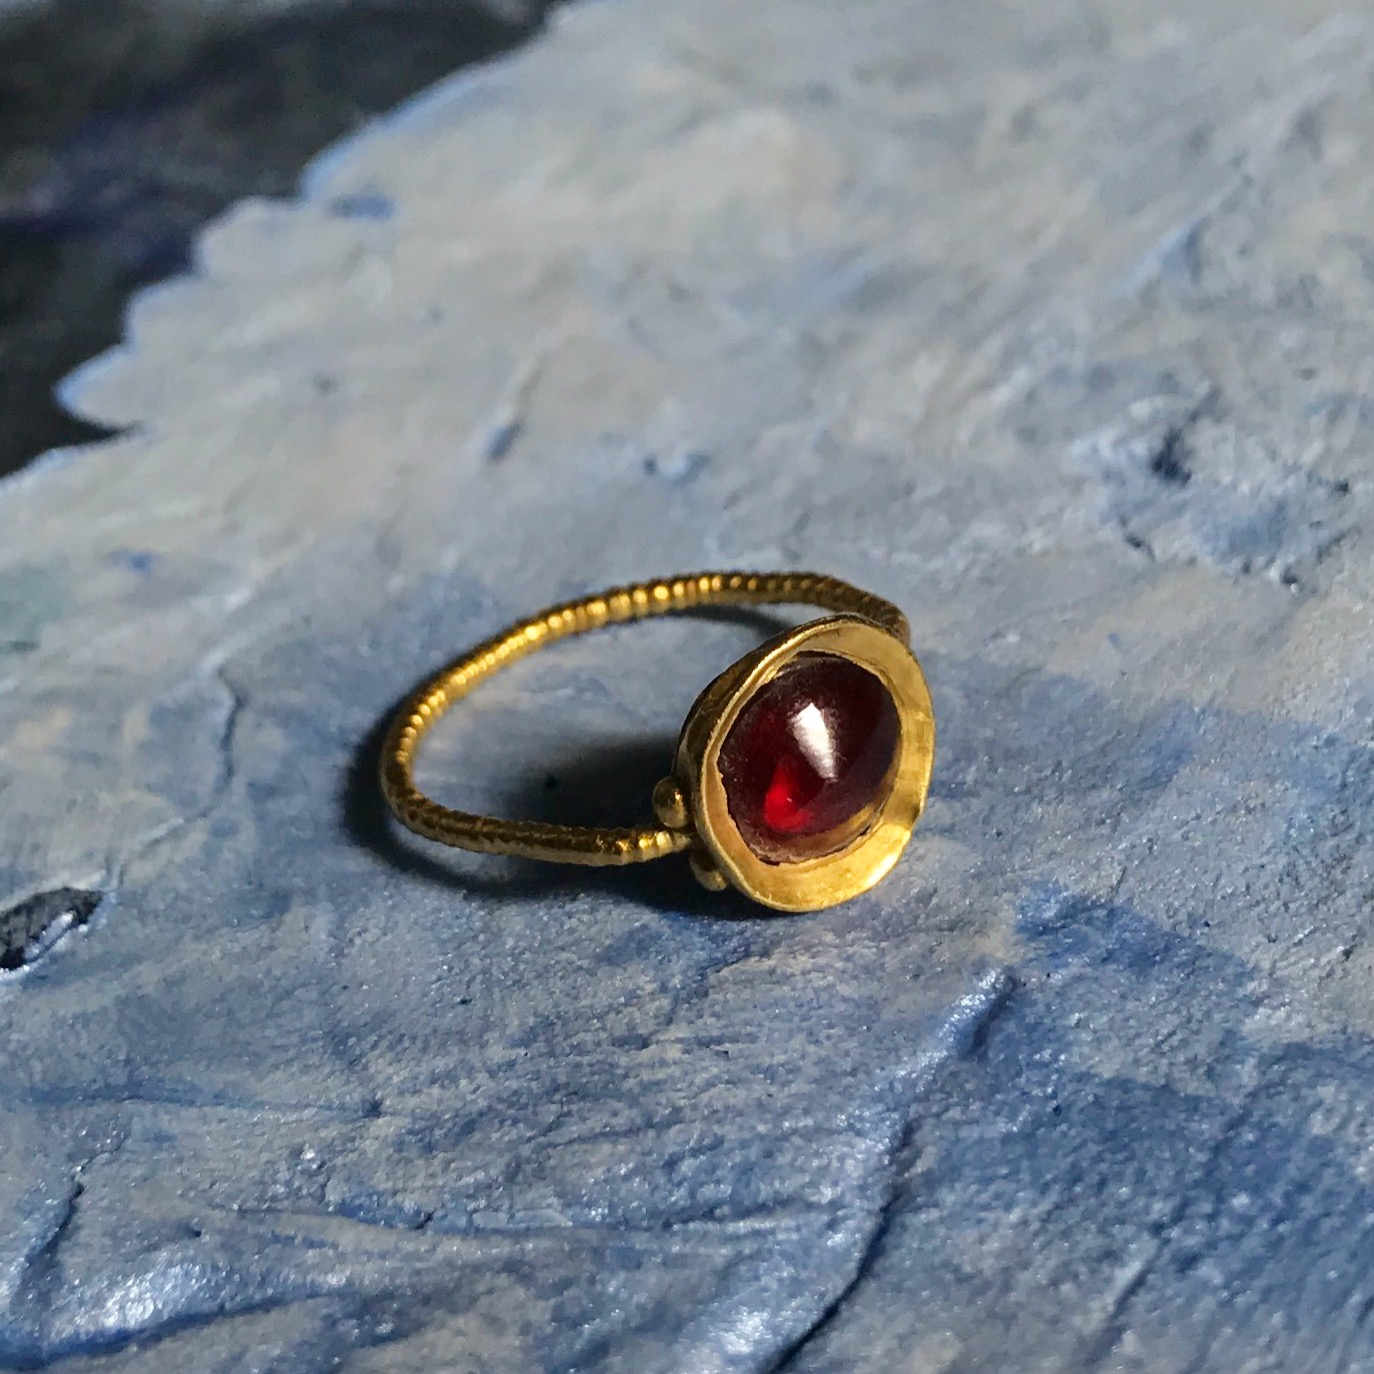 teremok_antiques_middle_ages_garnet_ring.JPG